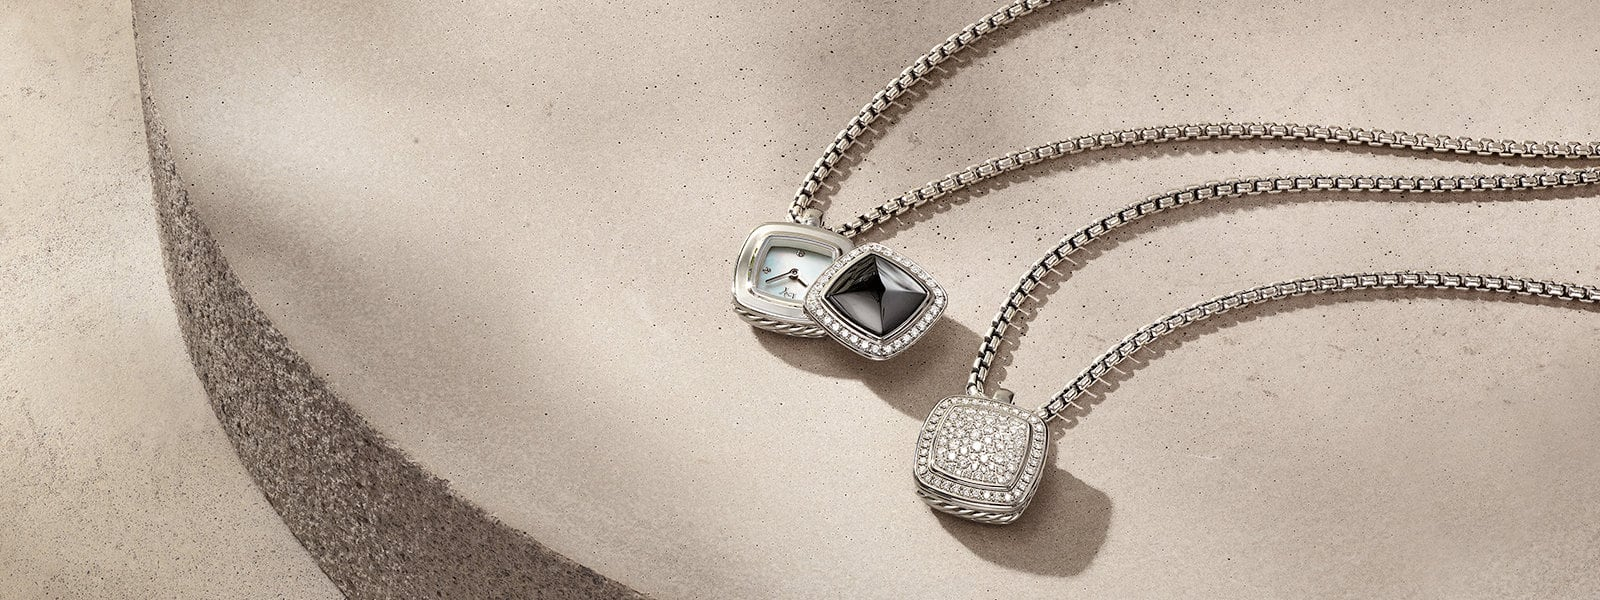 David Yurman Albion® pendant watches in sterling silver with stainless steel, black onyx and pavé diamonds lying on a round pink textured stone with shadows. One pendant watch's cover is open to reveal a clock face.